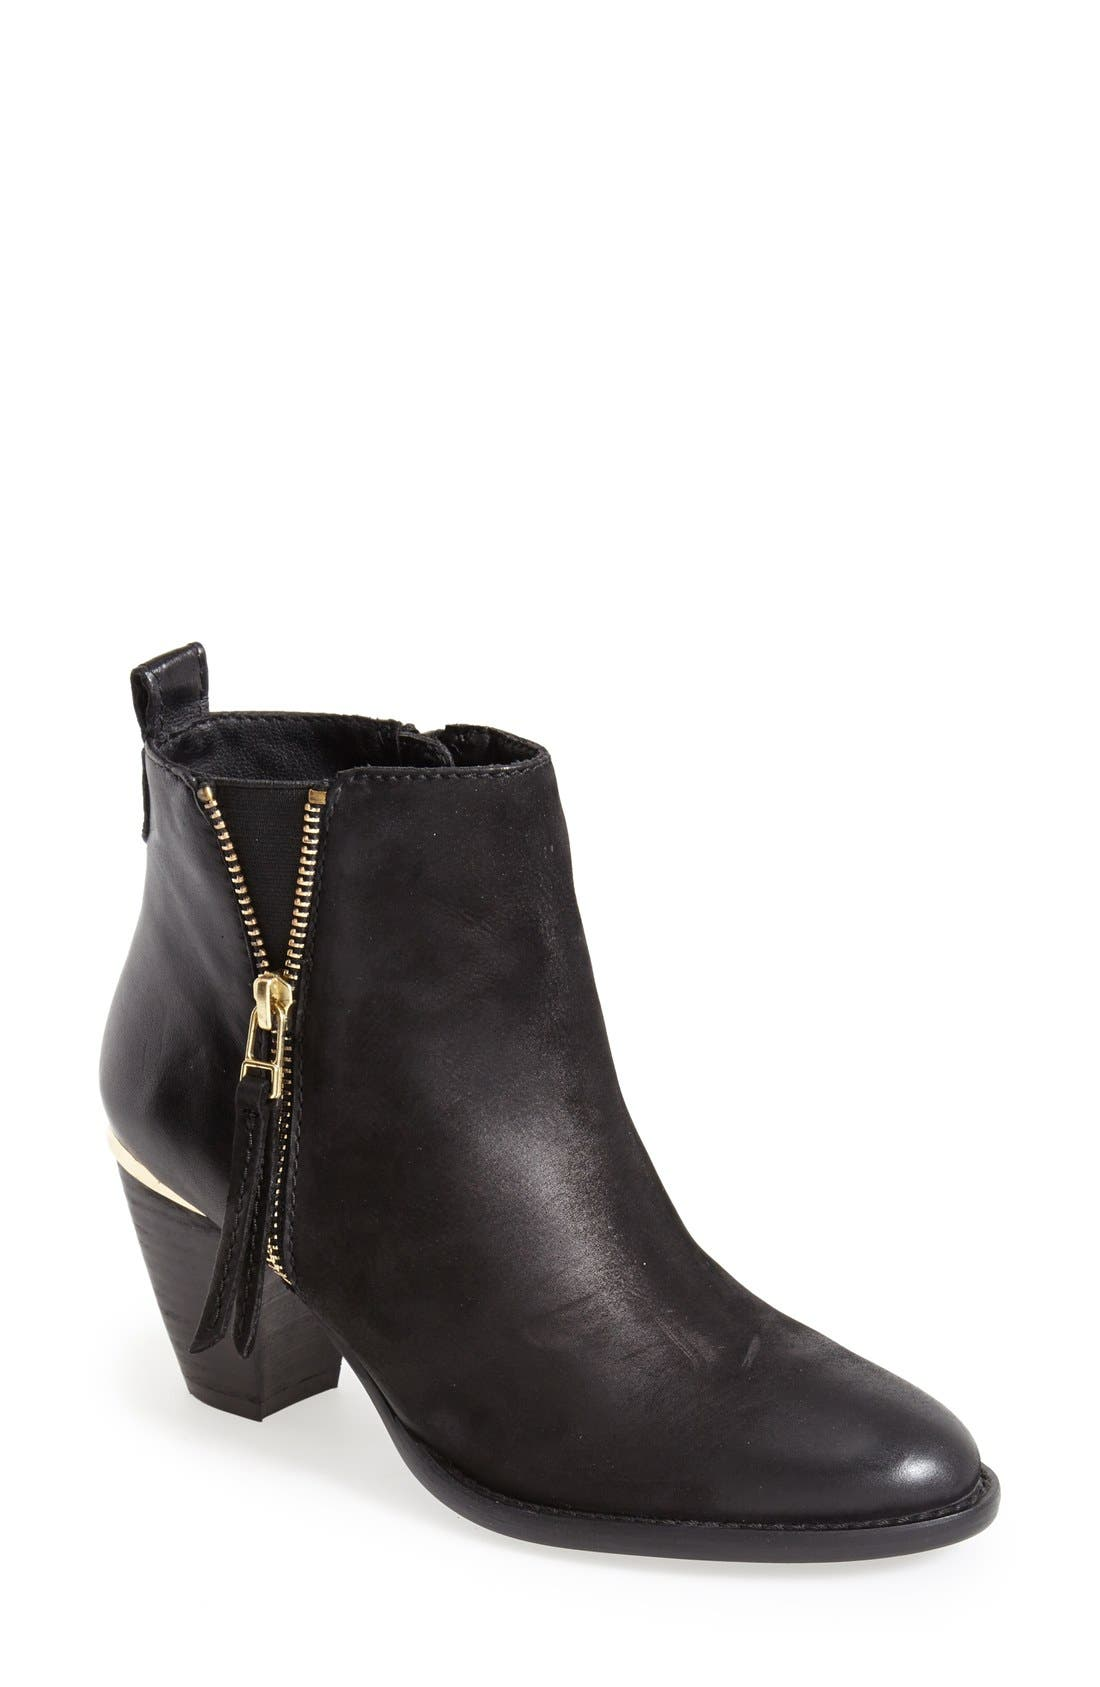 'Wantagh' Leather Ankle Boot,                         Main,                         color, 001